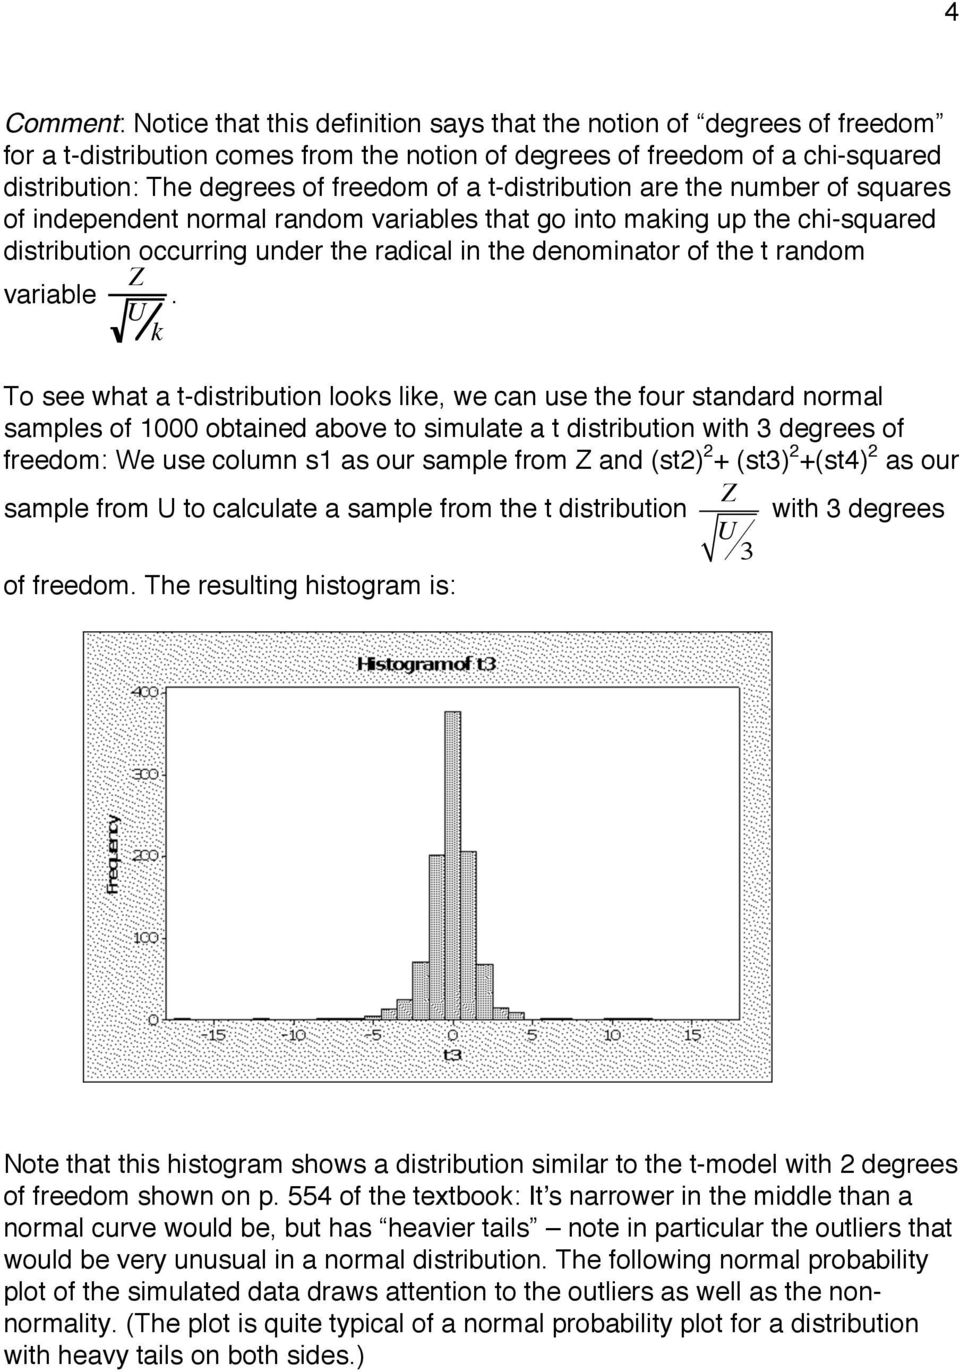 U k To see what a t-distributio looks like, we ca use the four stadard ormal samples of 1000 obtaied above to simulate a t distributio with 3 degrees of freedom: We use colum s1 as our sample from Z